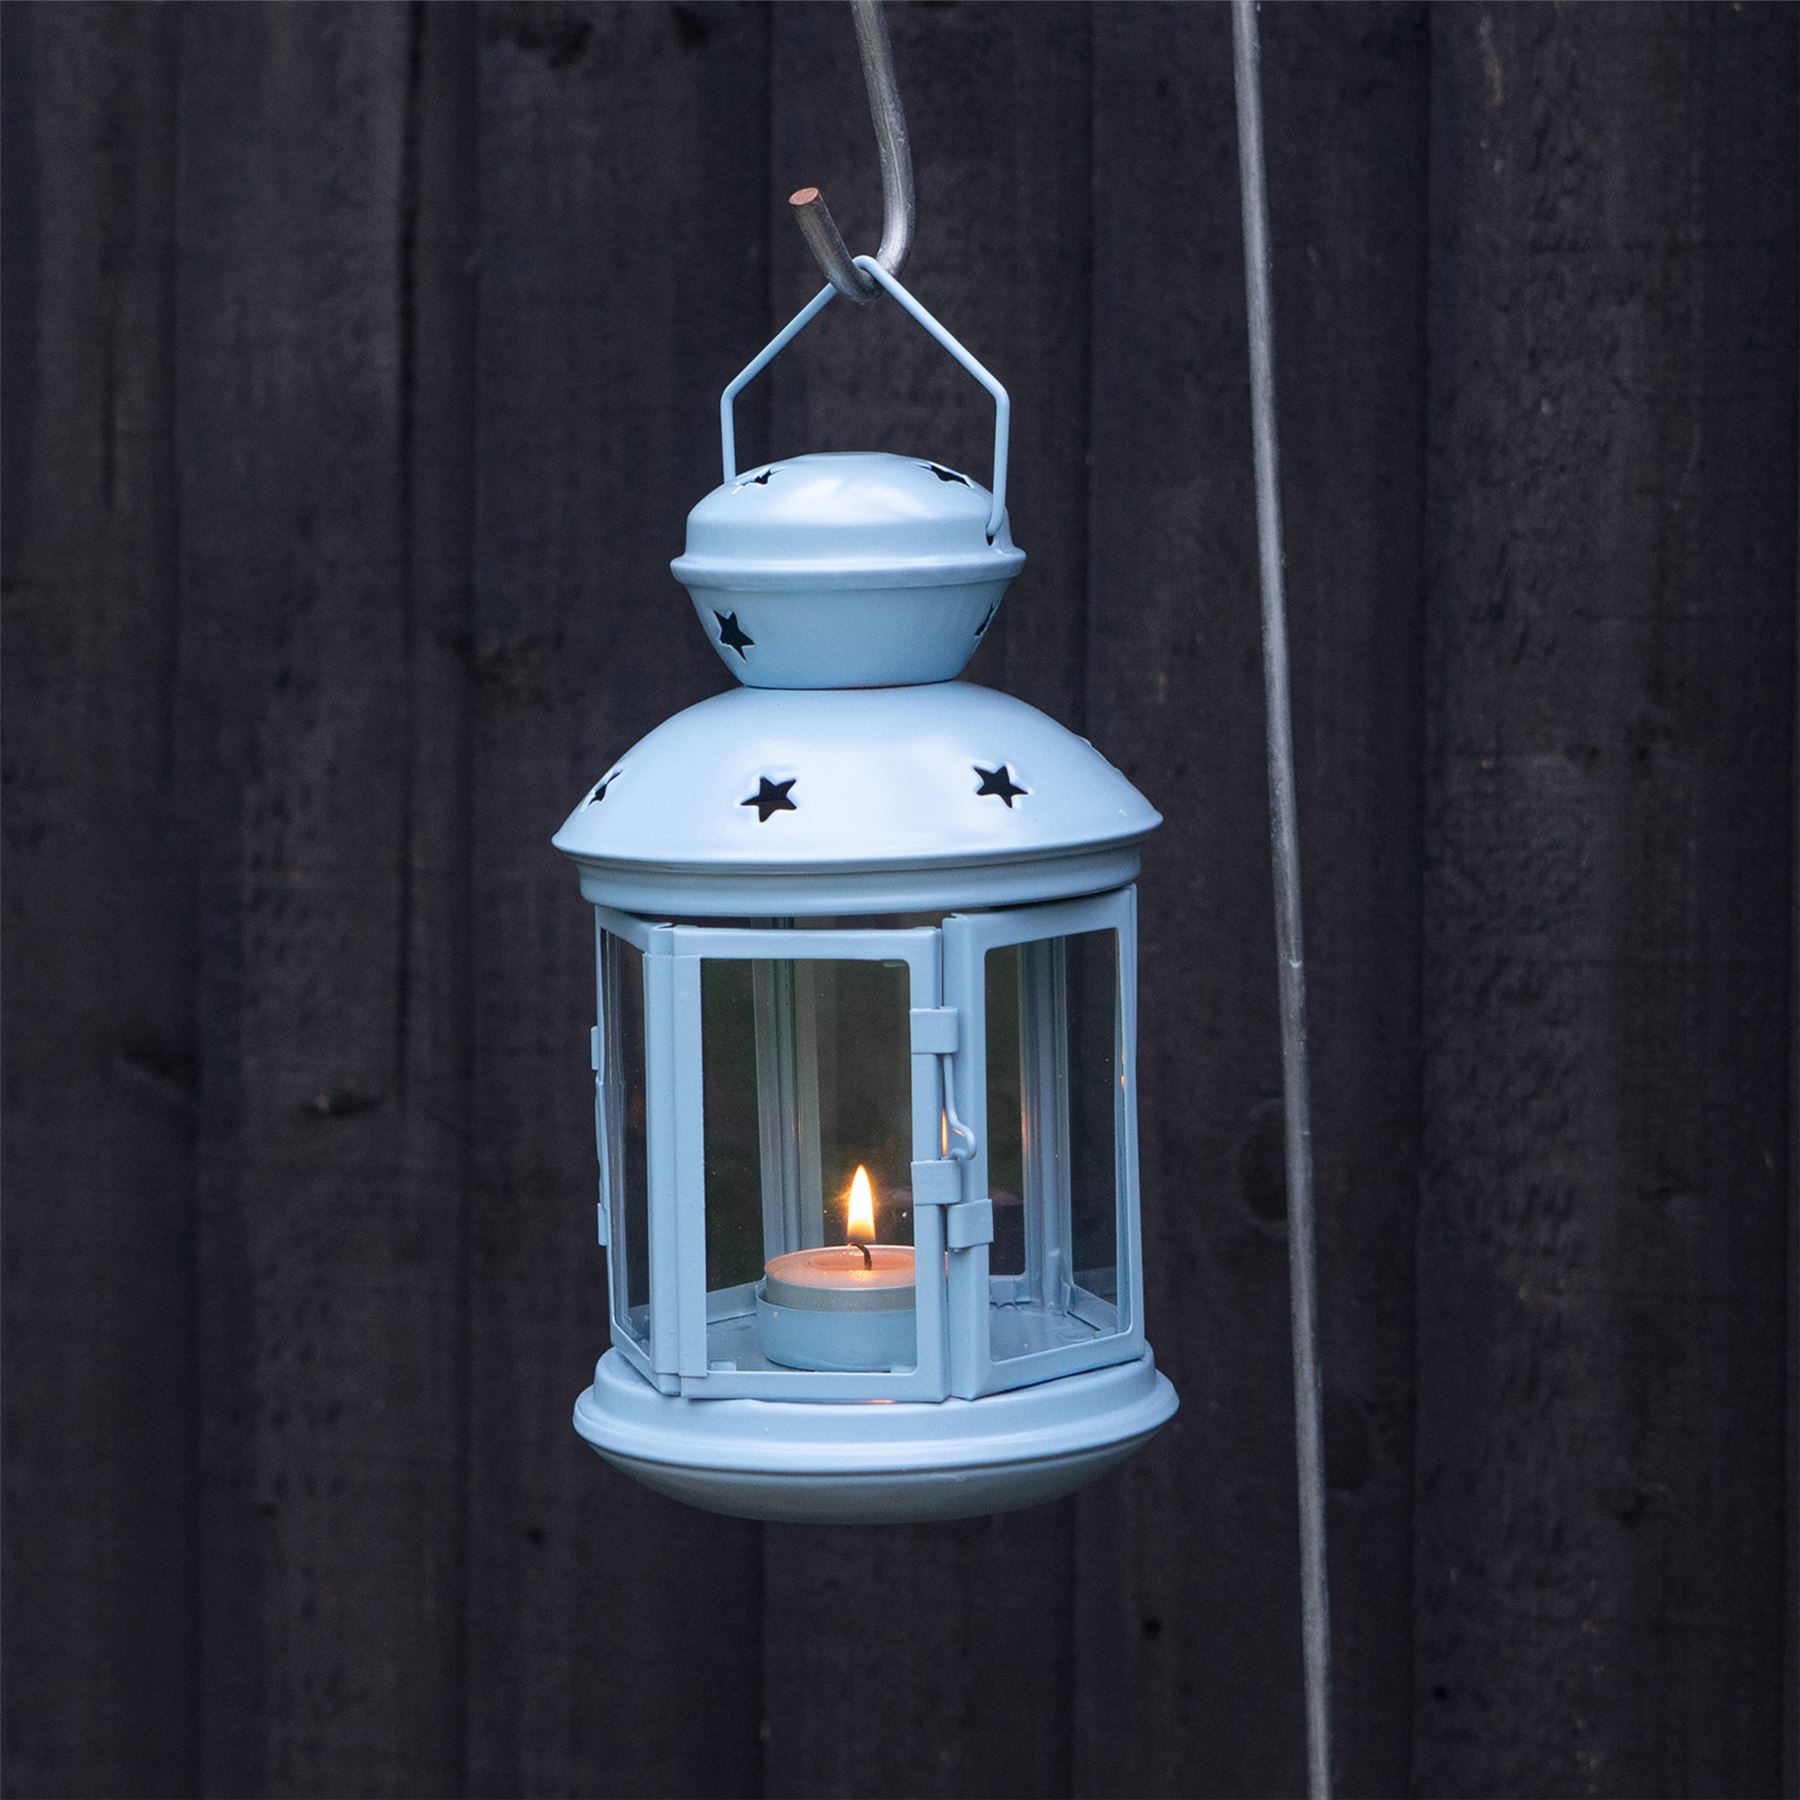 Metal-Candle-Lanterns-Tealight-Holders-Vintage-French-Moroccan-Style-20cm-x2 thumbnail 10